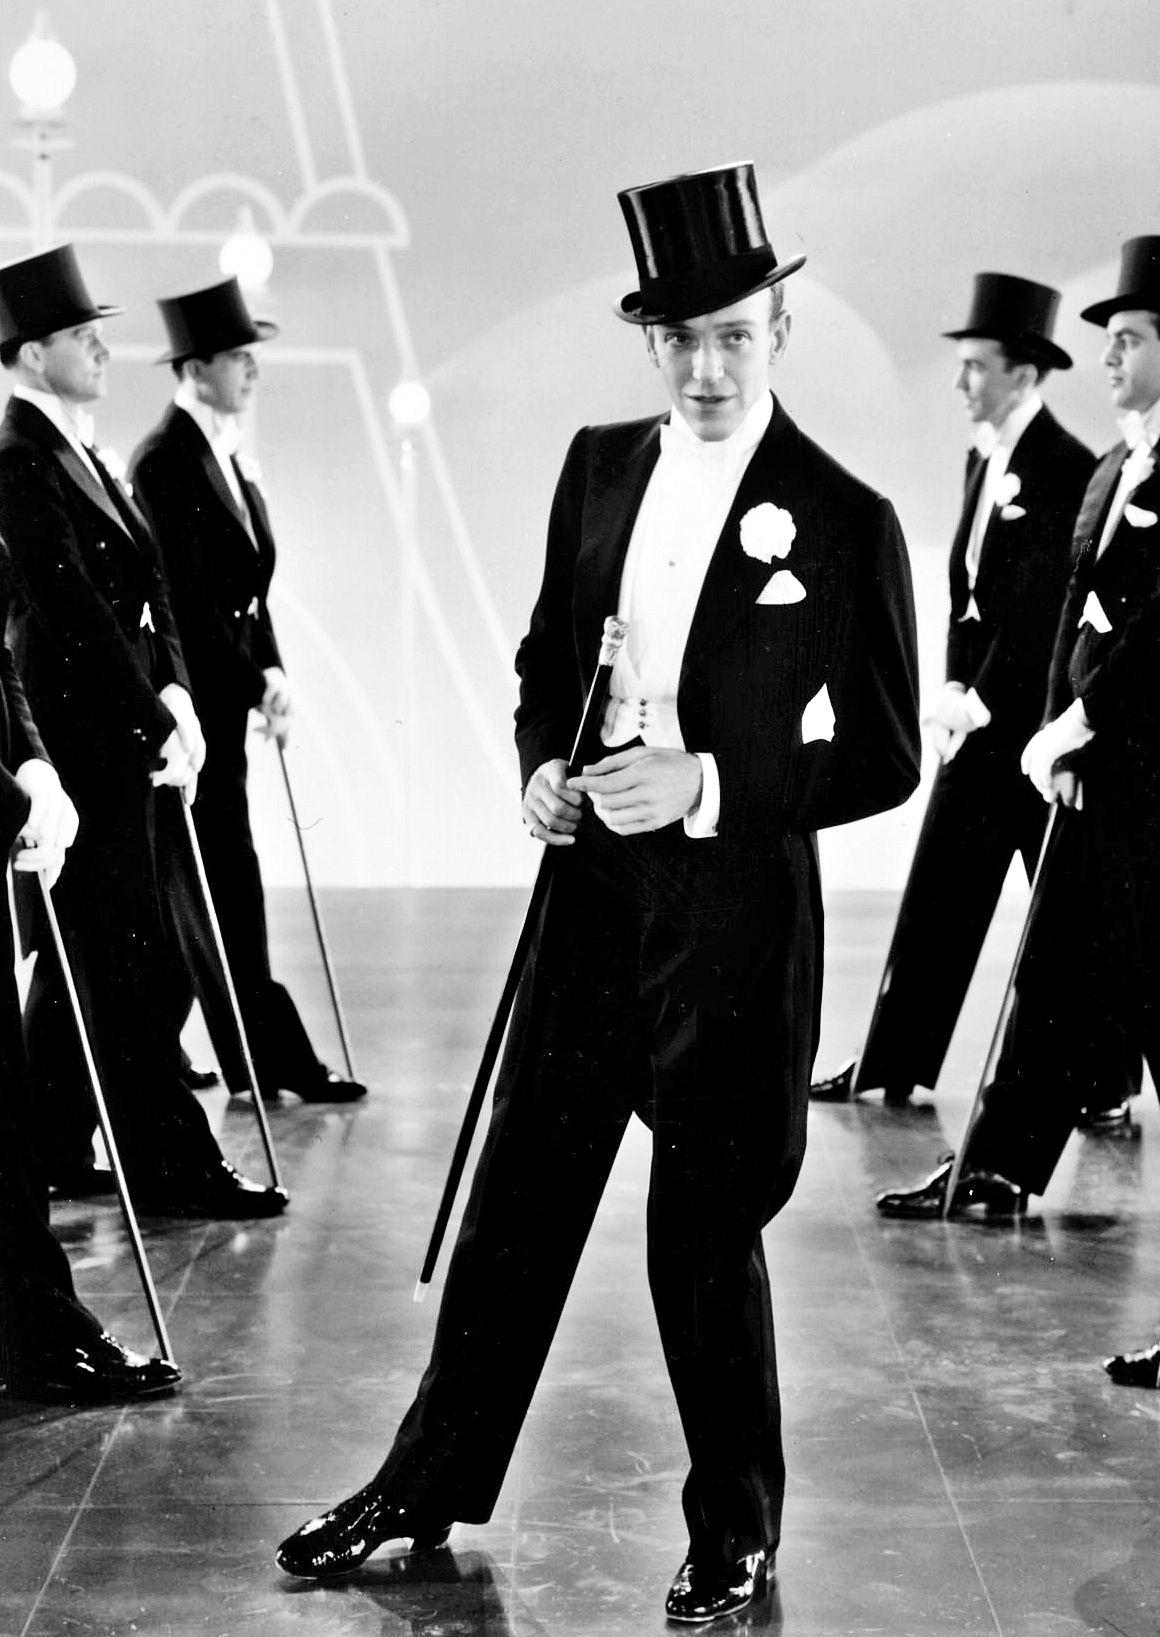 Top Hat (1935) even his speech had the style and rythm of